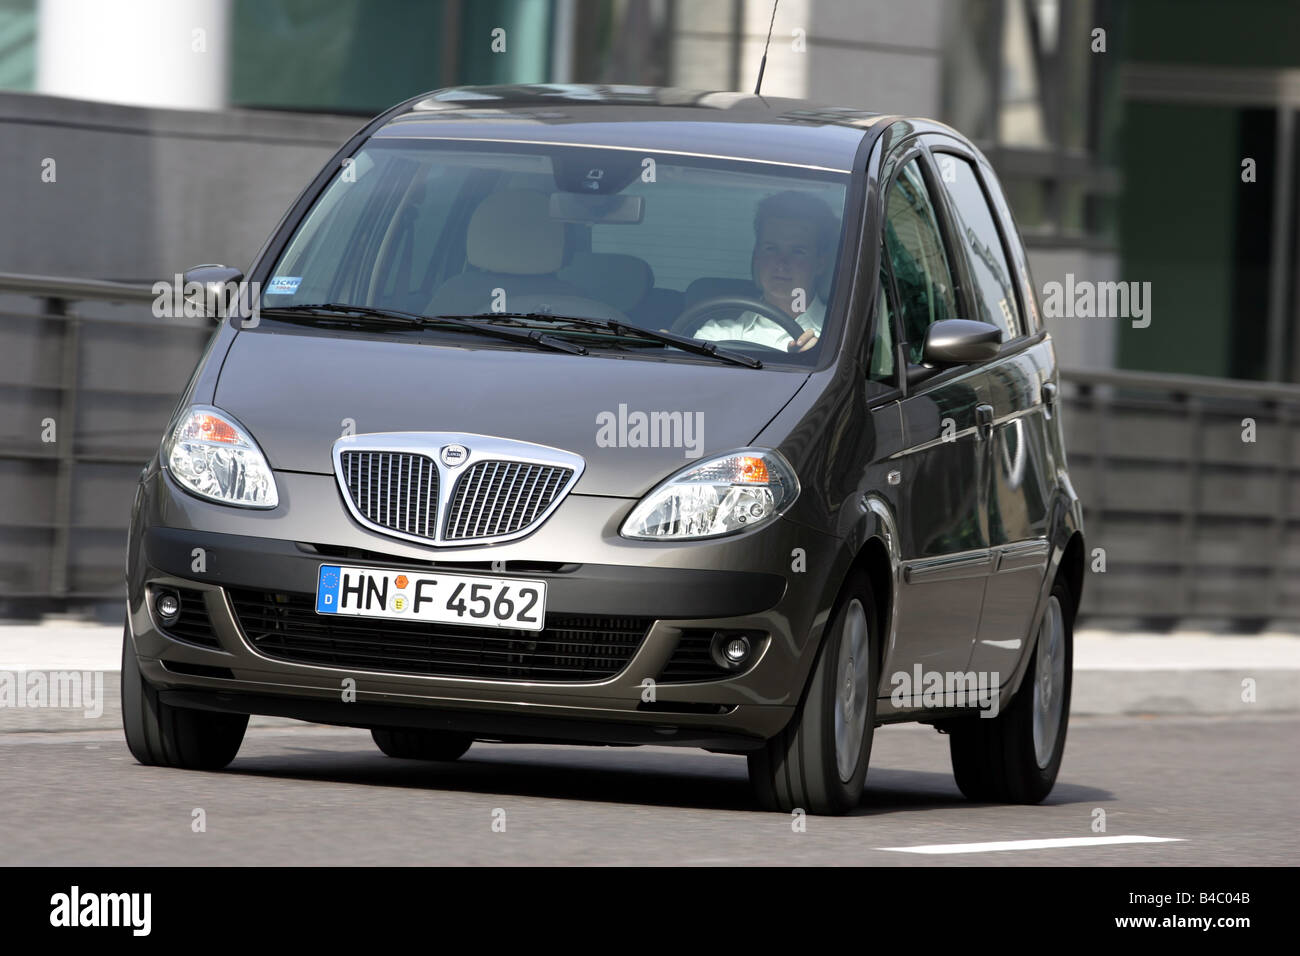 https://c8.alamy.com/comp/B4C04B/car-lancia-musa-multijet-10-jtd-van-model-year-2004-driving-diagonal-B4C04B.jpg